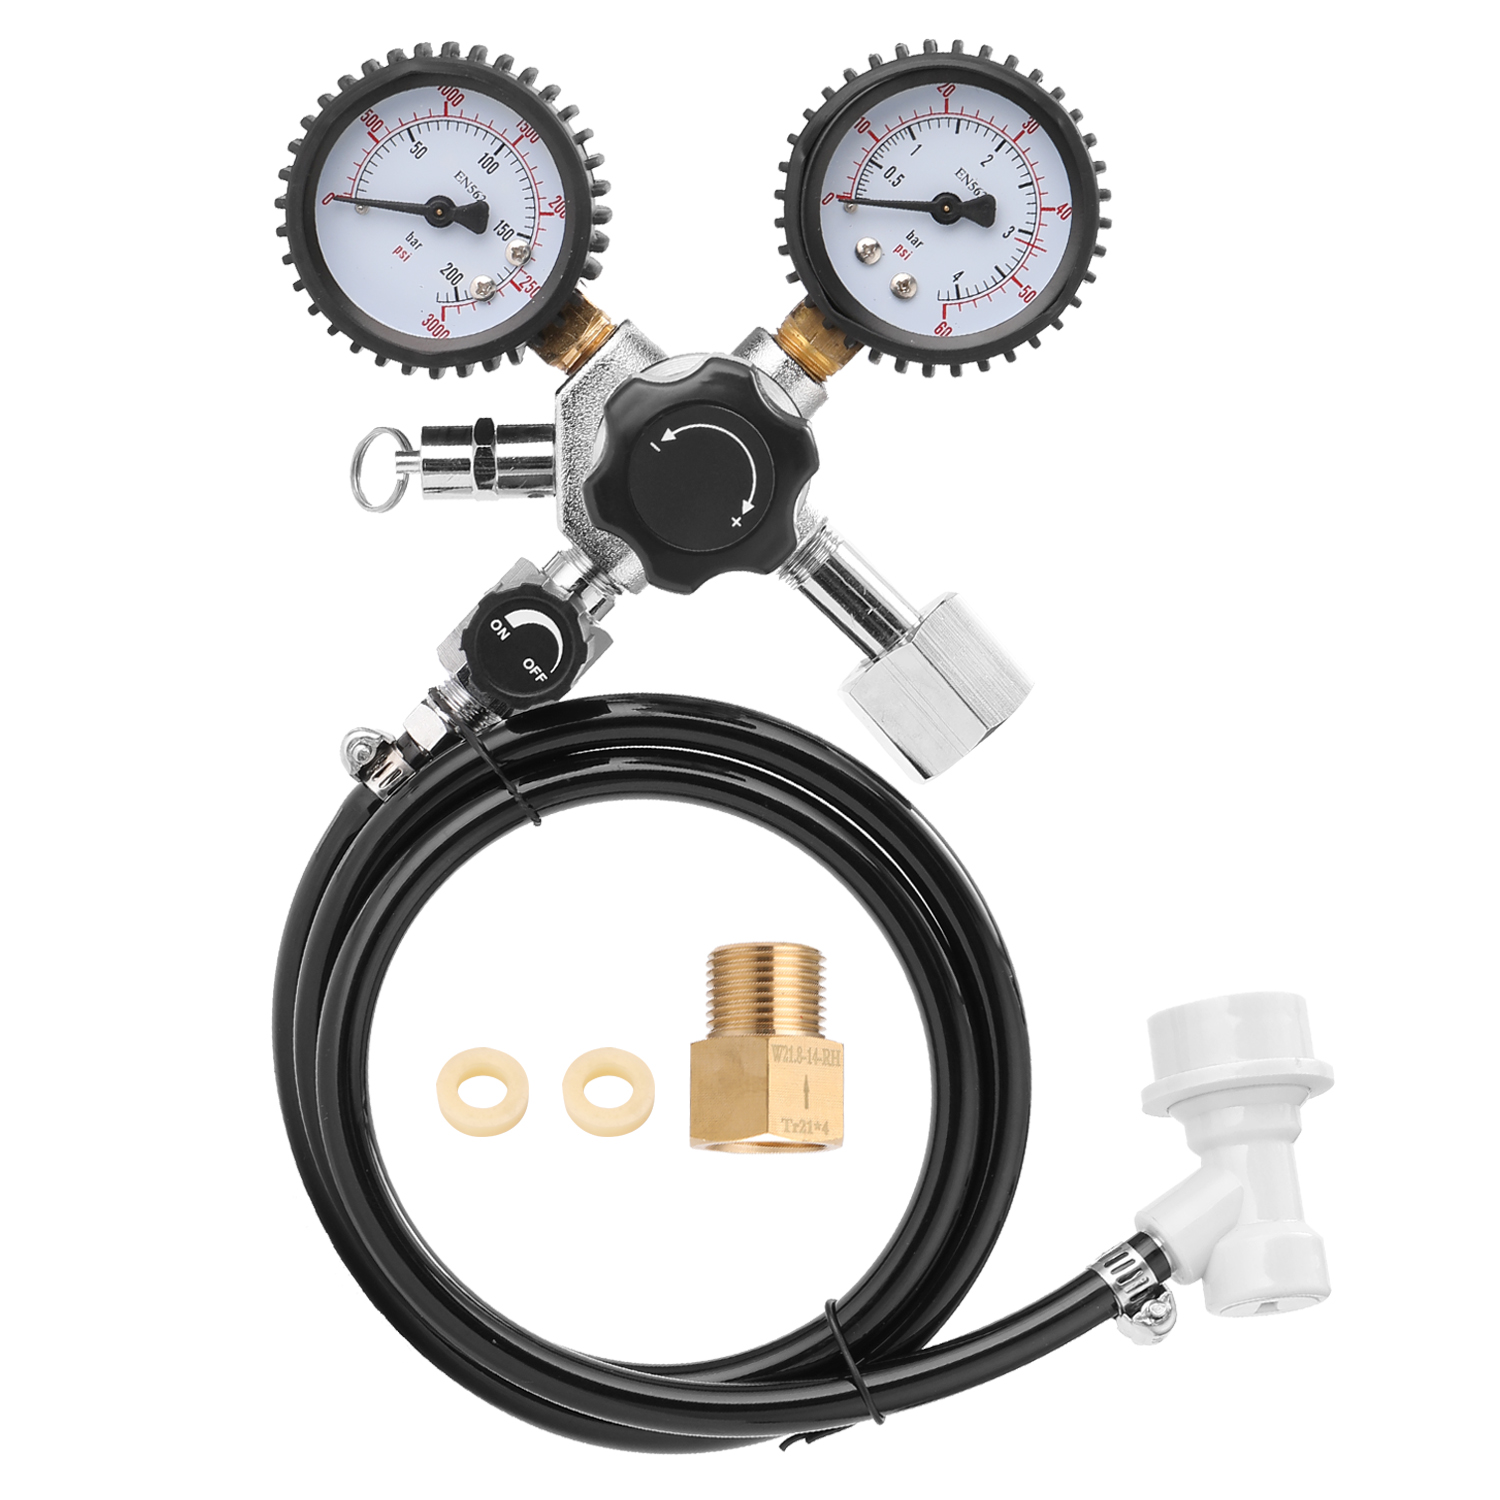 Portable Double Gauge Beer CO2 Pressure Relief Valve Safety Keg Buck Regulator 0-3000 PSI Tanks Pressure Gauge